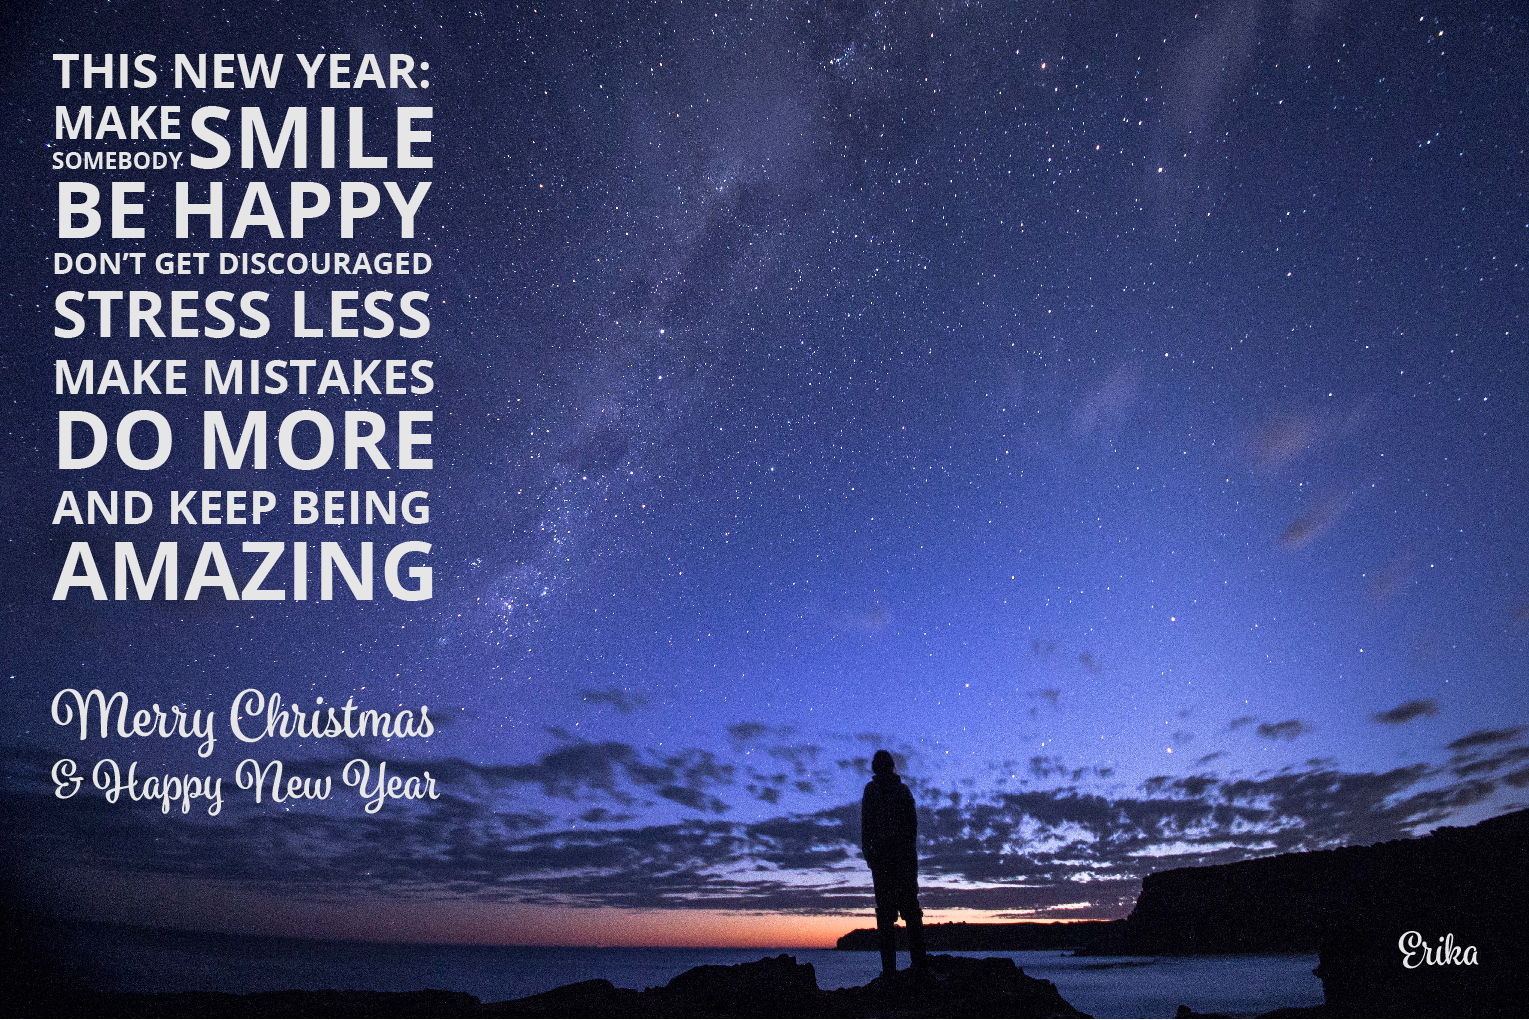 Merry Christmas and Happy New Year Card with special quote